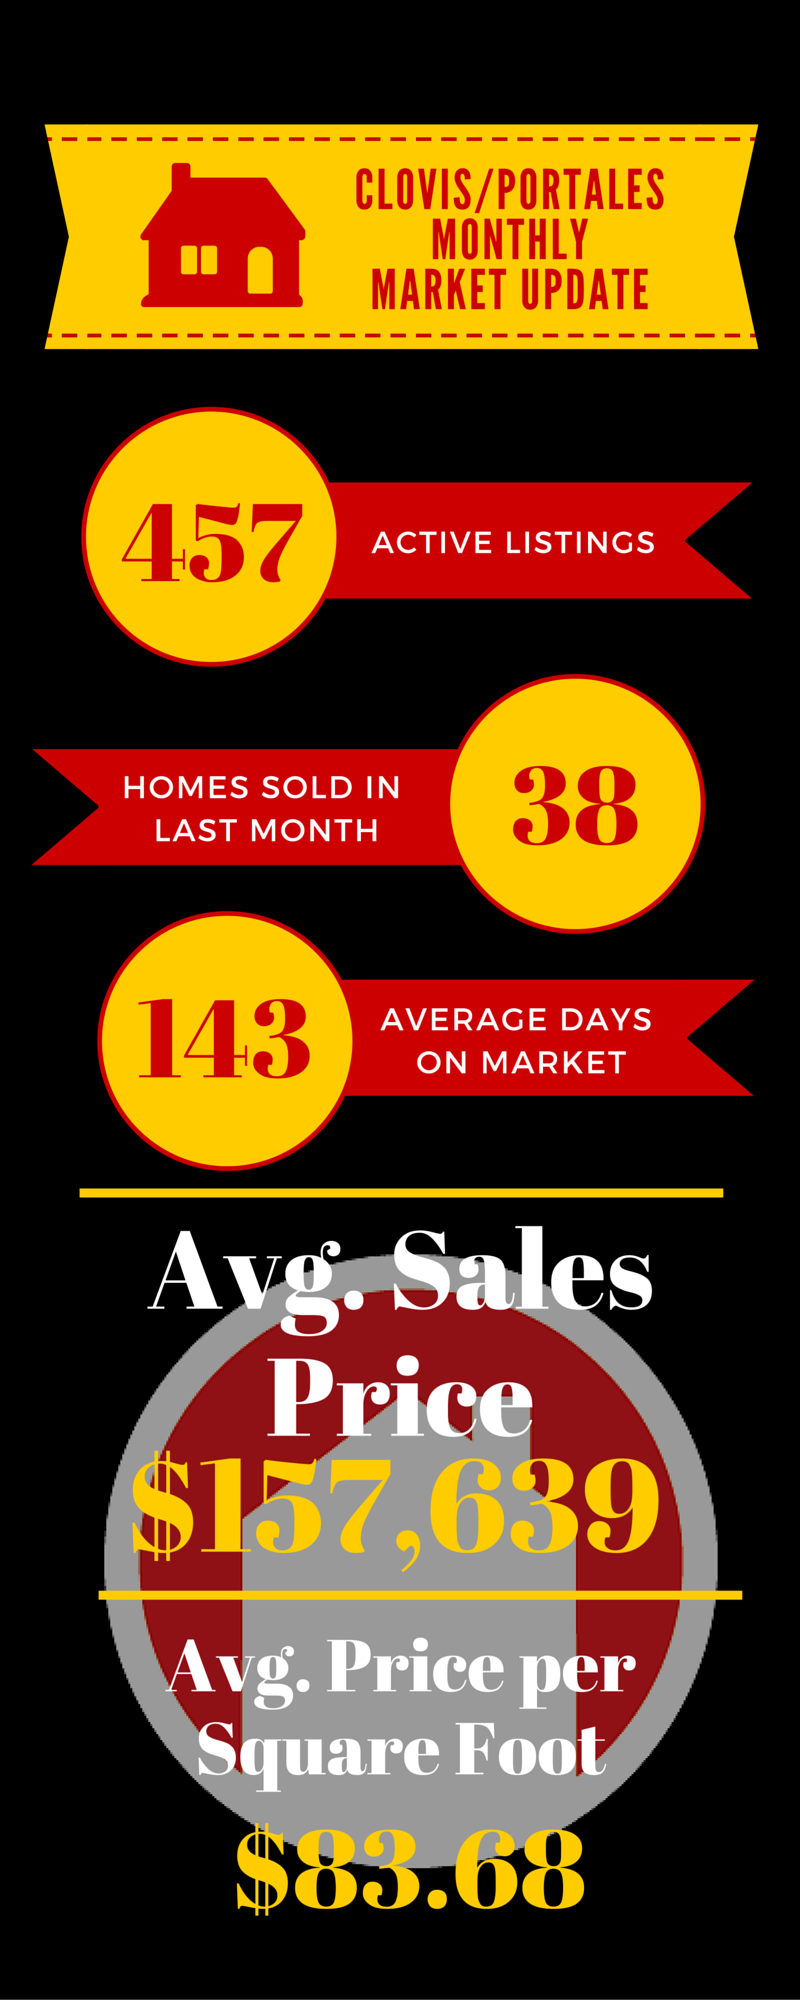 Clovis/Portales Housing Market | June 2016